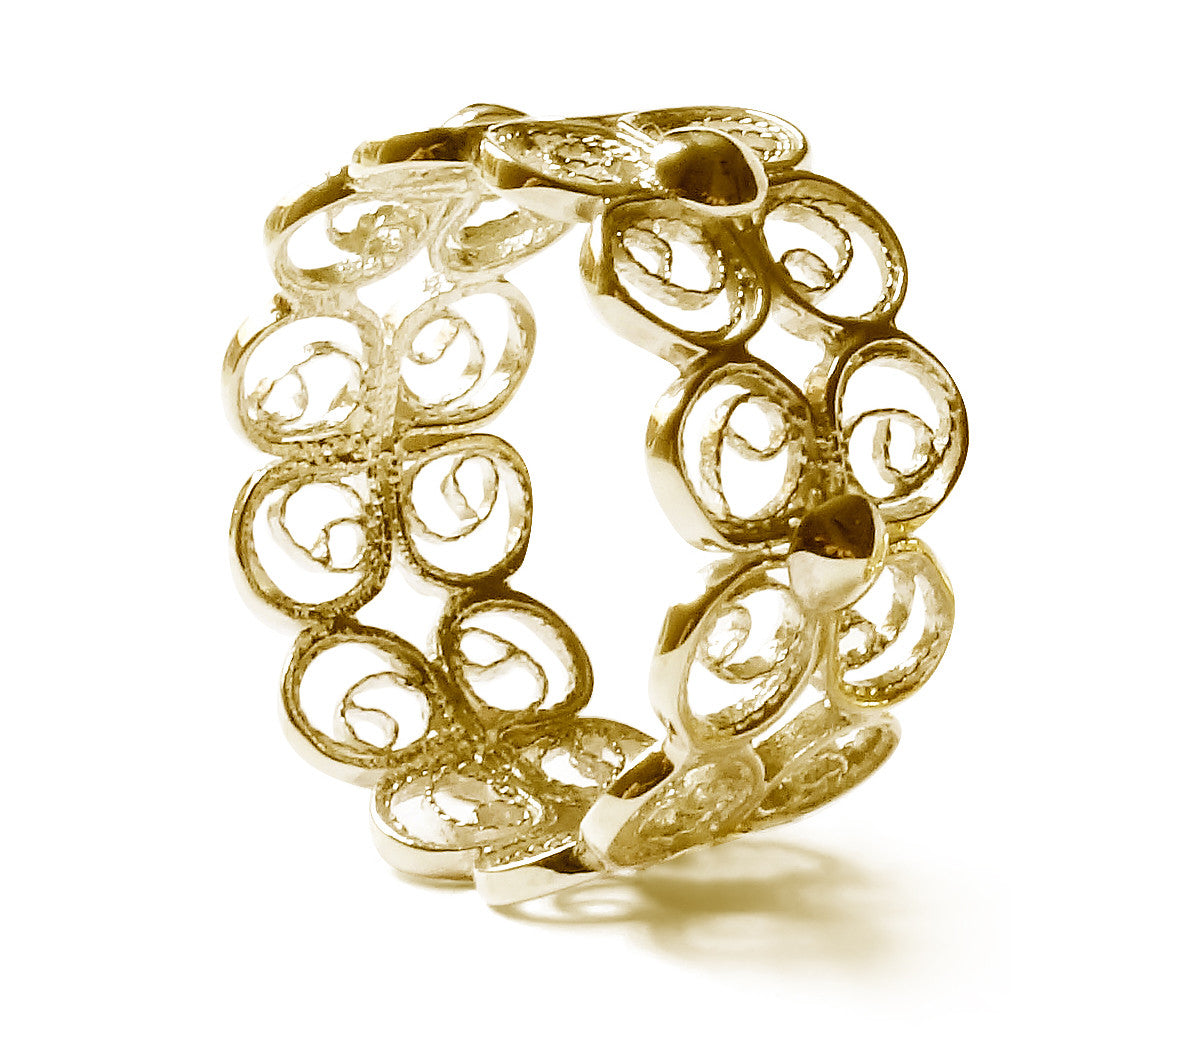 Filigree Enchanting Clover Ring in Yellow Gold - Arabel Lebrusan